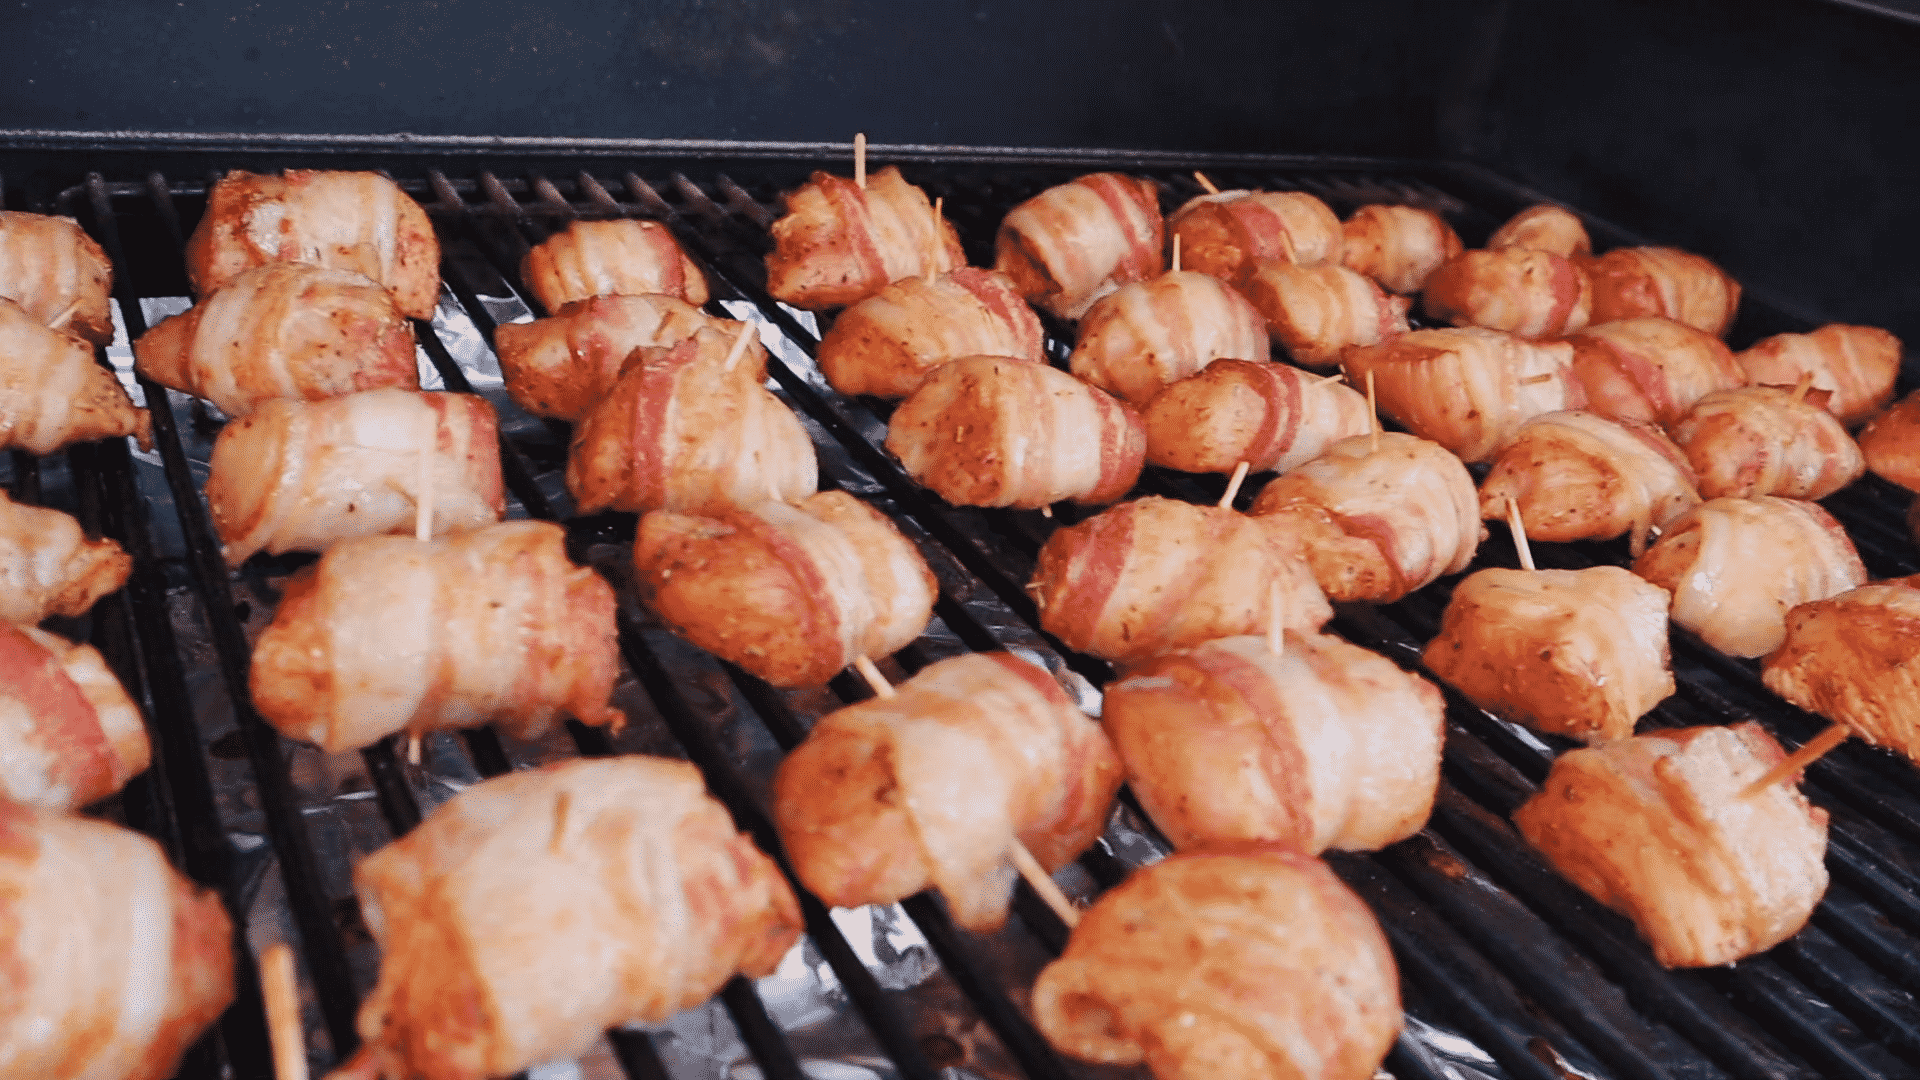 Bacon wrapped turkey bites lined up on the grill grates of a smoker.